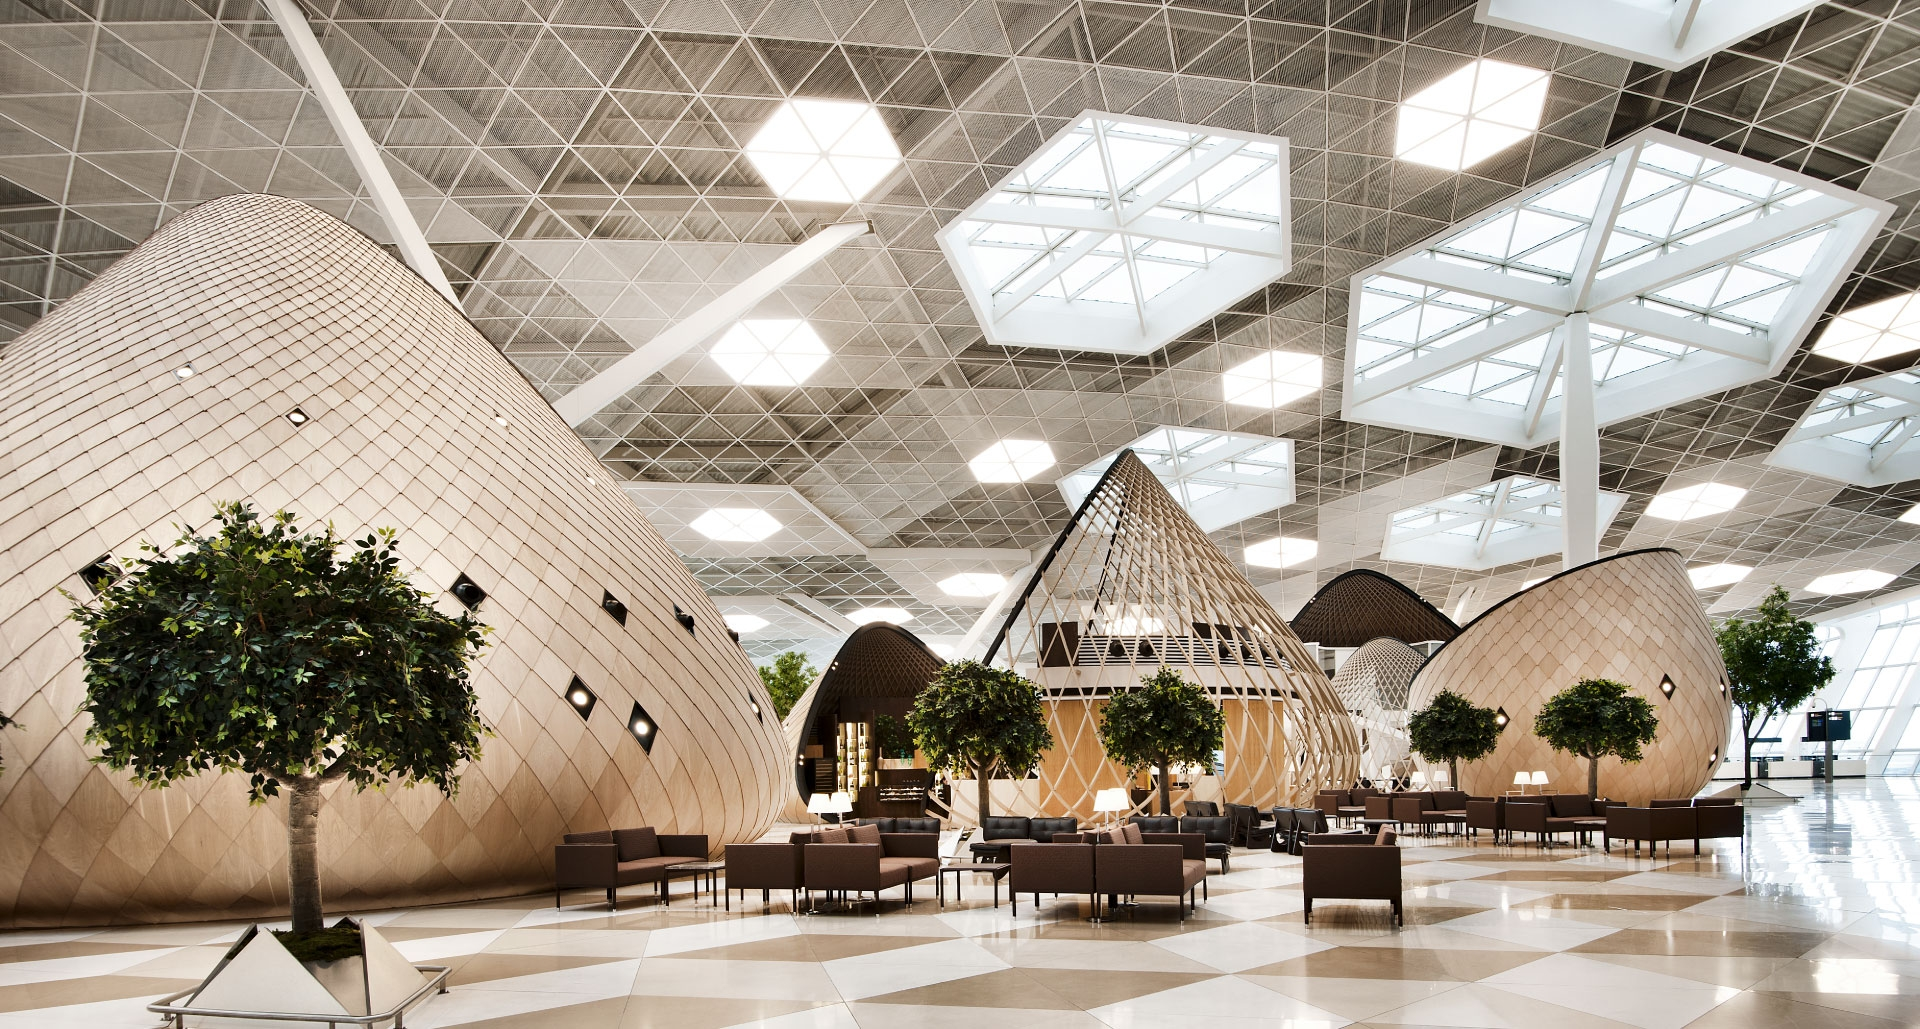 HAYDAR ALIYEV INTERNATIONAL AIRPORT